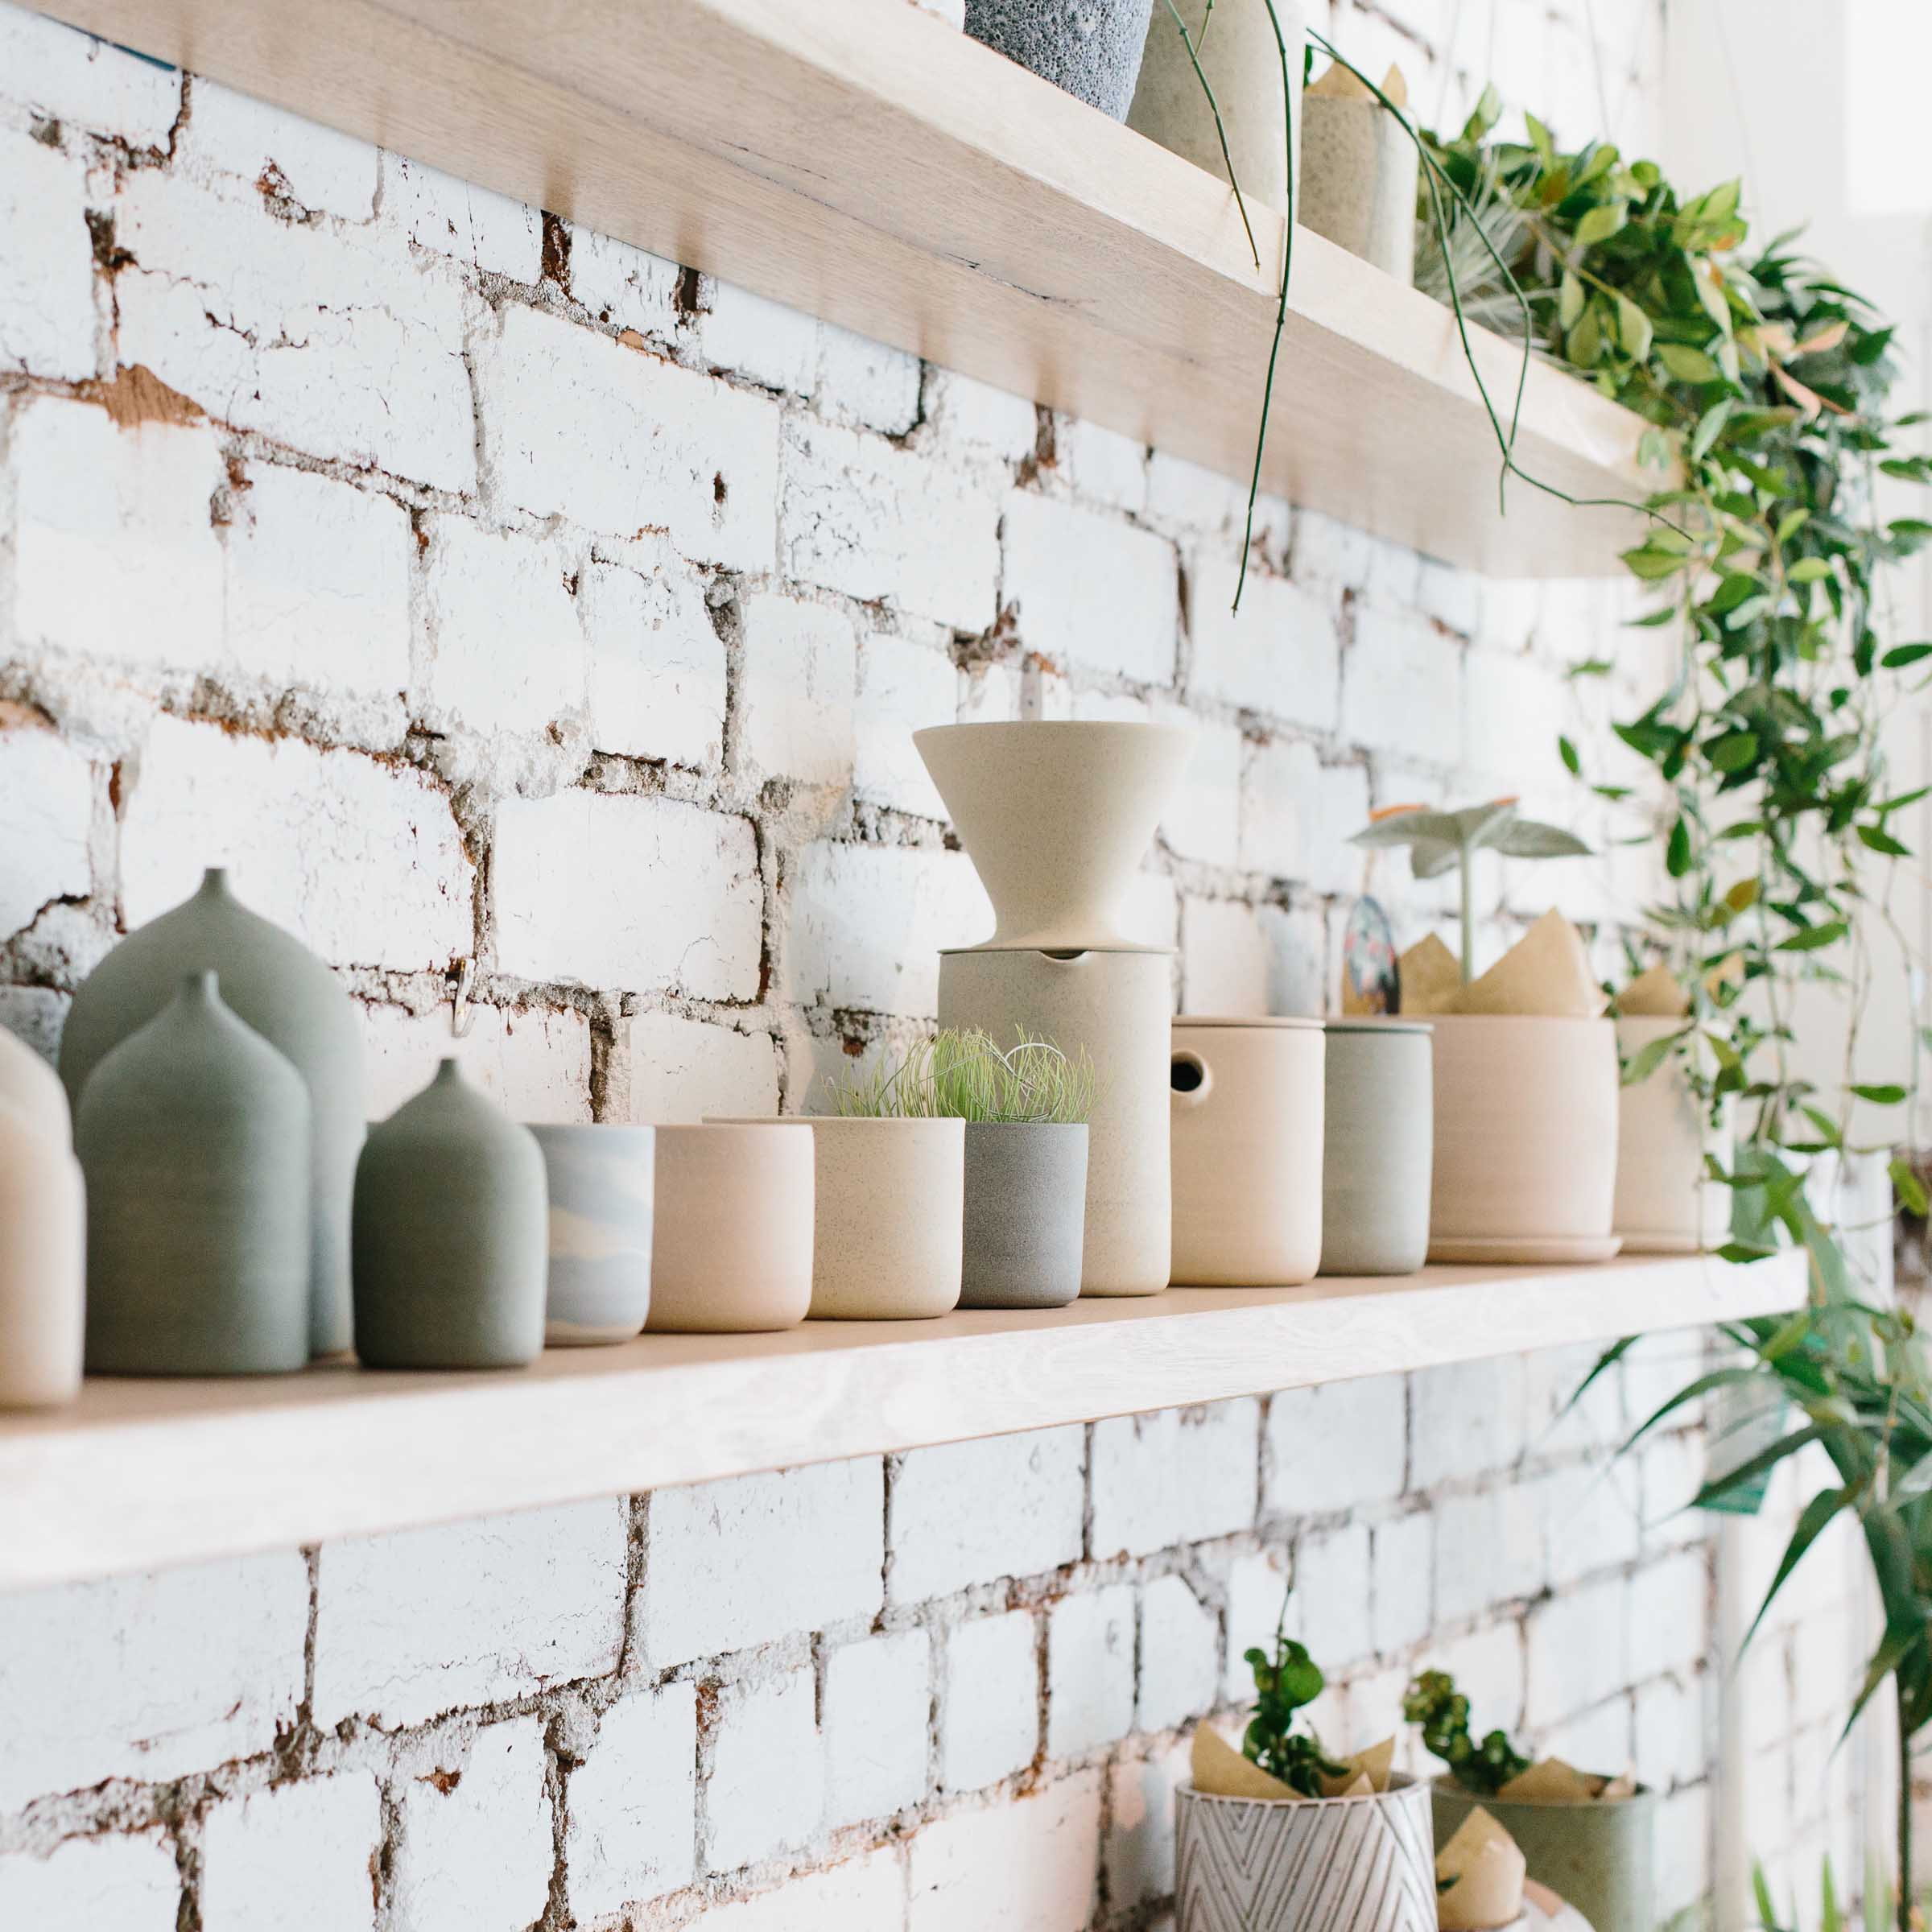 Bud vases and ceramic planters for sale